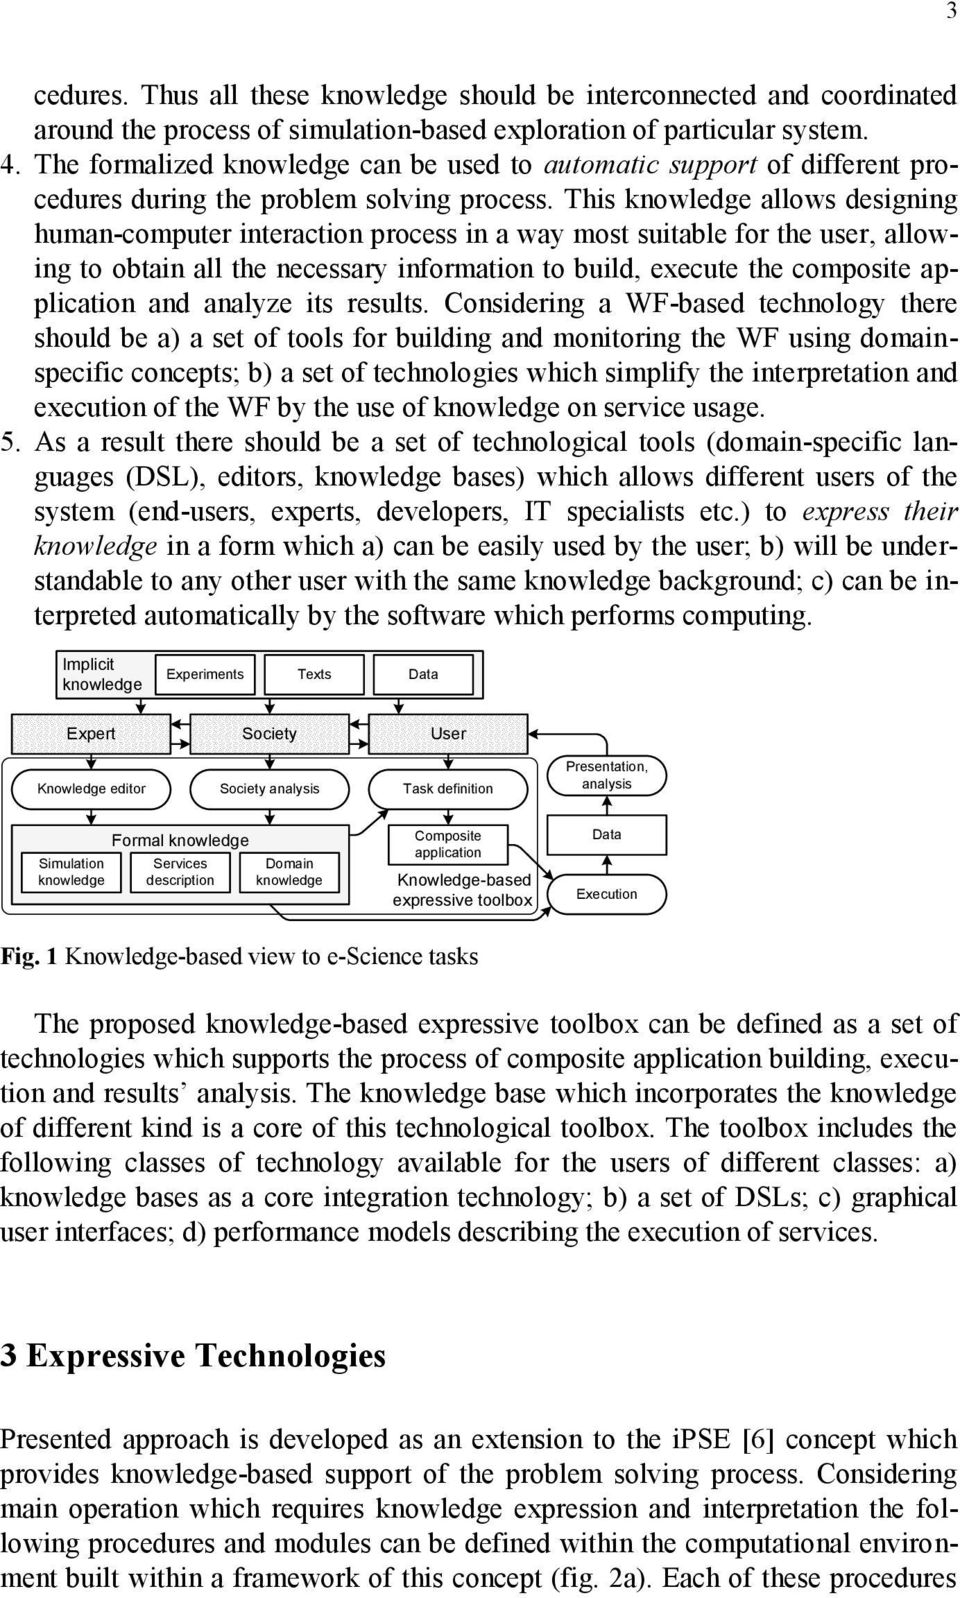 This knowledge allows designing human-computer interaction process in a way most suitable for the user, allowing to obtain all the necessary information to build, execute the composite application